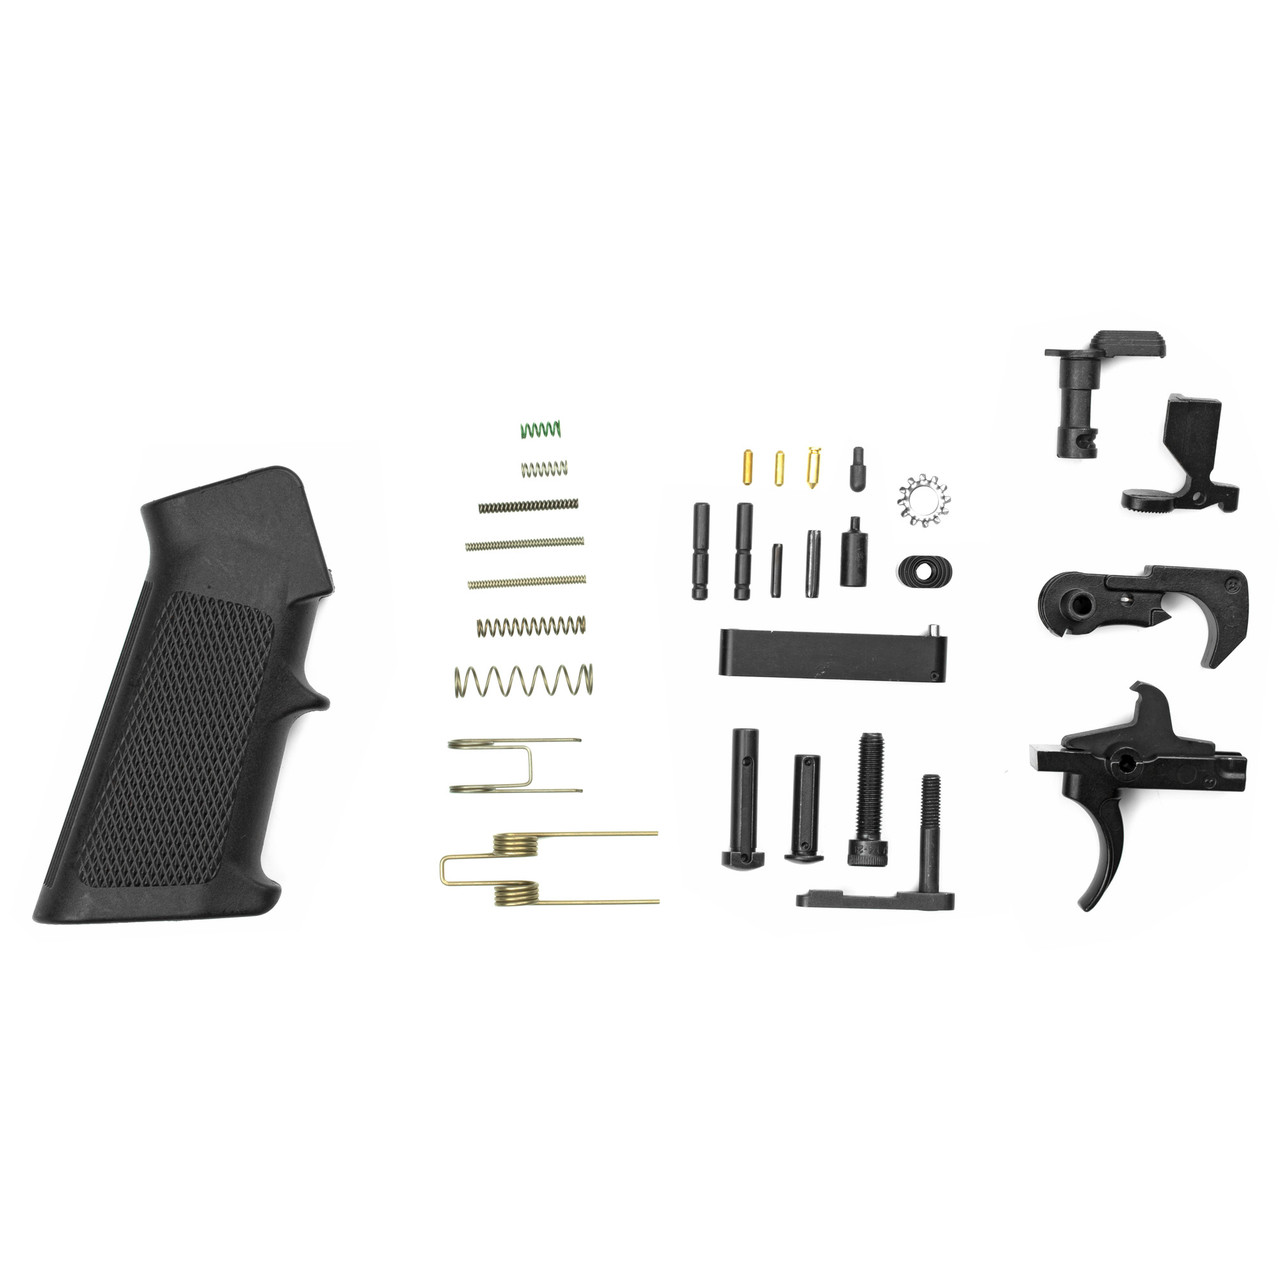 LBE Lower Parts Kit